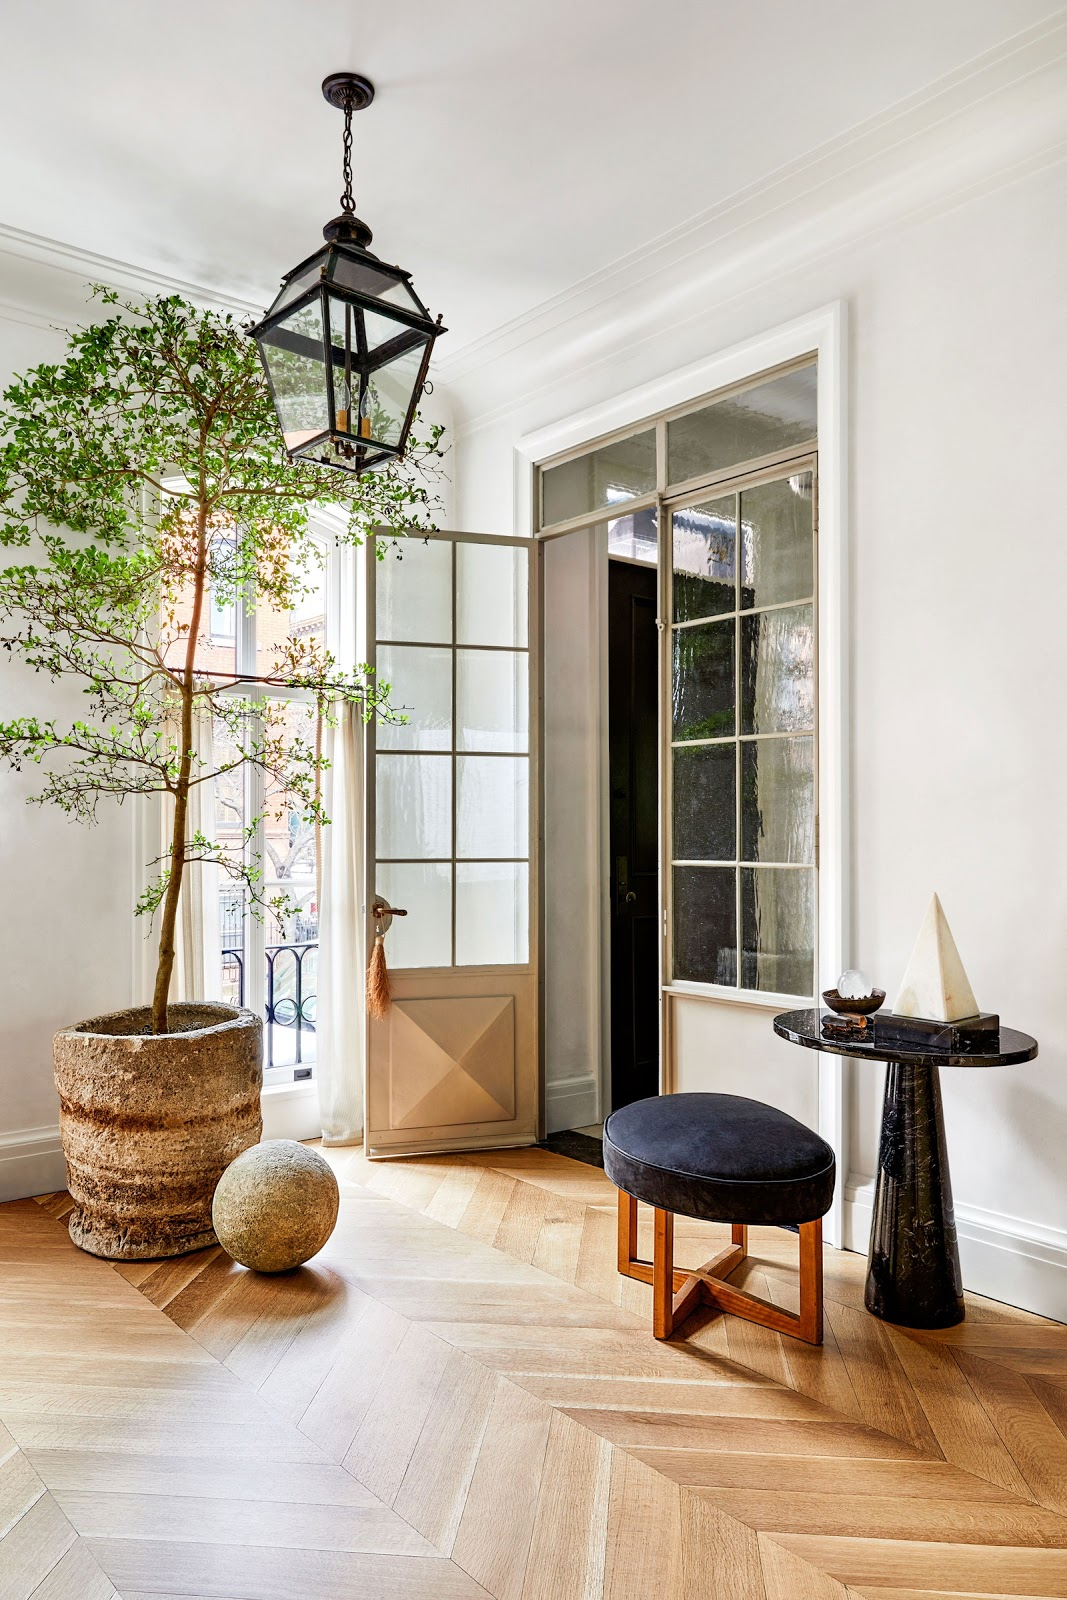 Décor Inspiration | At With Home: Nate Berkus and Jeremiah Brent, NYC